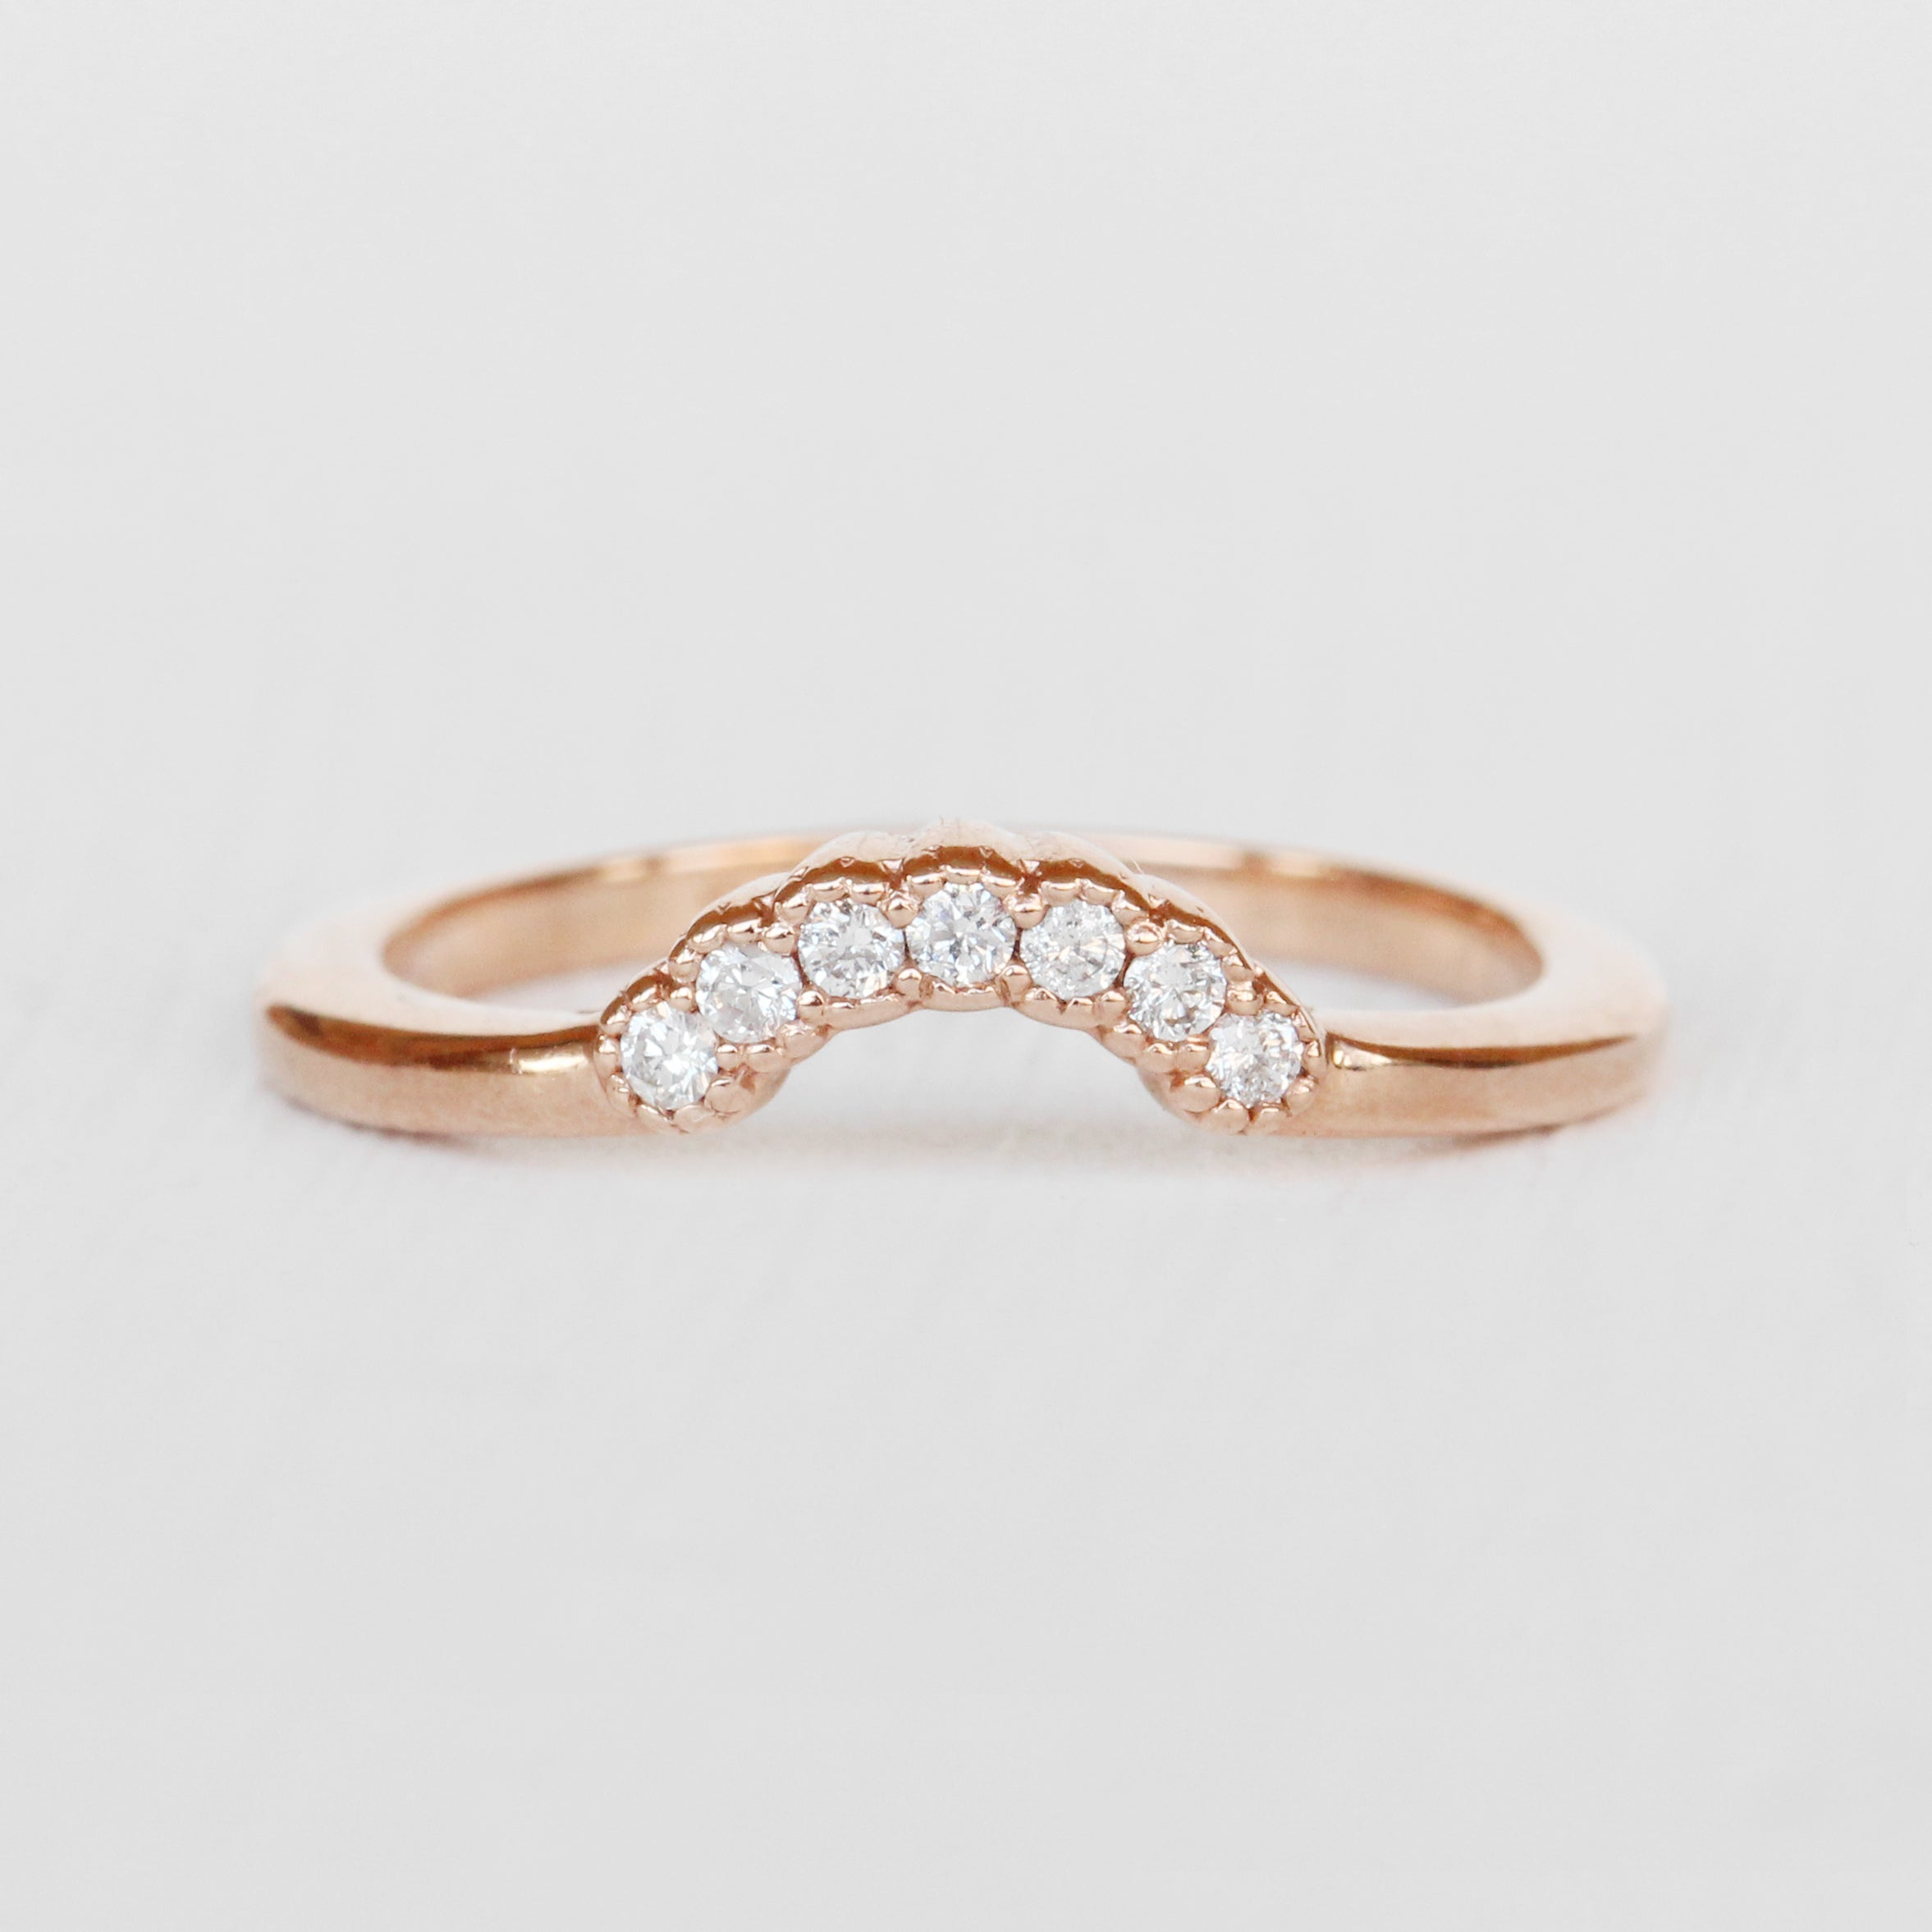 Joy - Contoured Diamond Wedding Stacking Band - made to order - Celestial Diamonds ® by Midwinter Co.